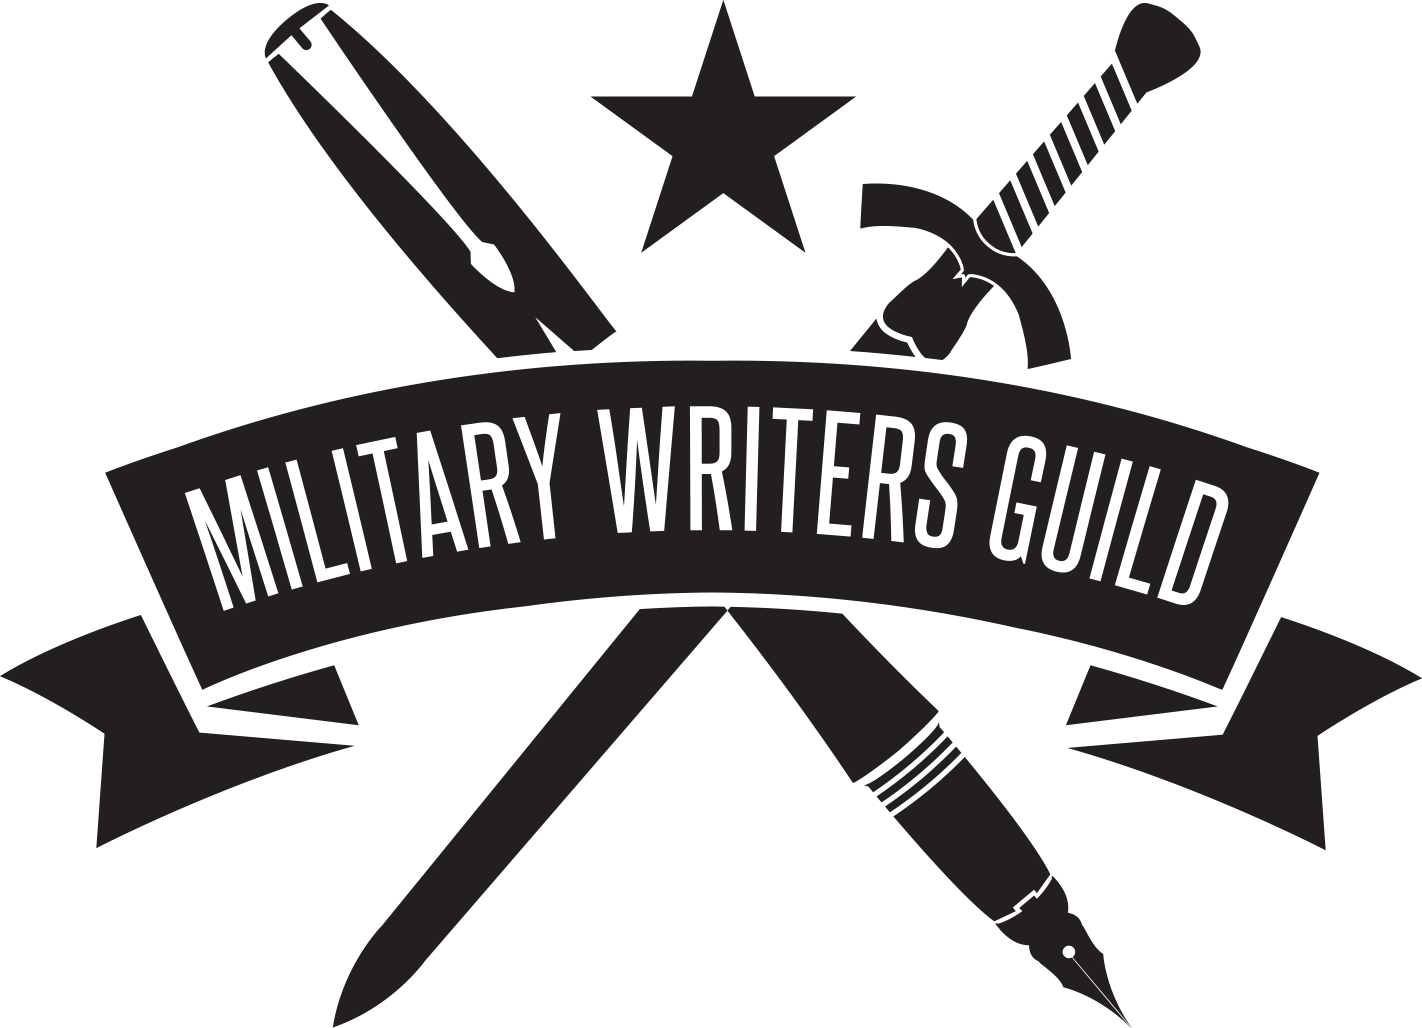 Essay about military service your community